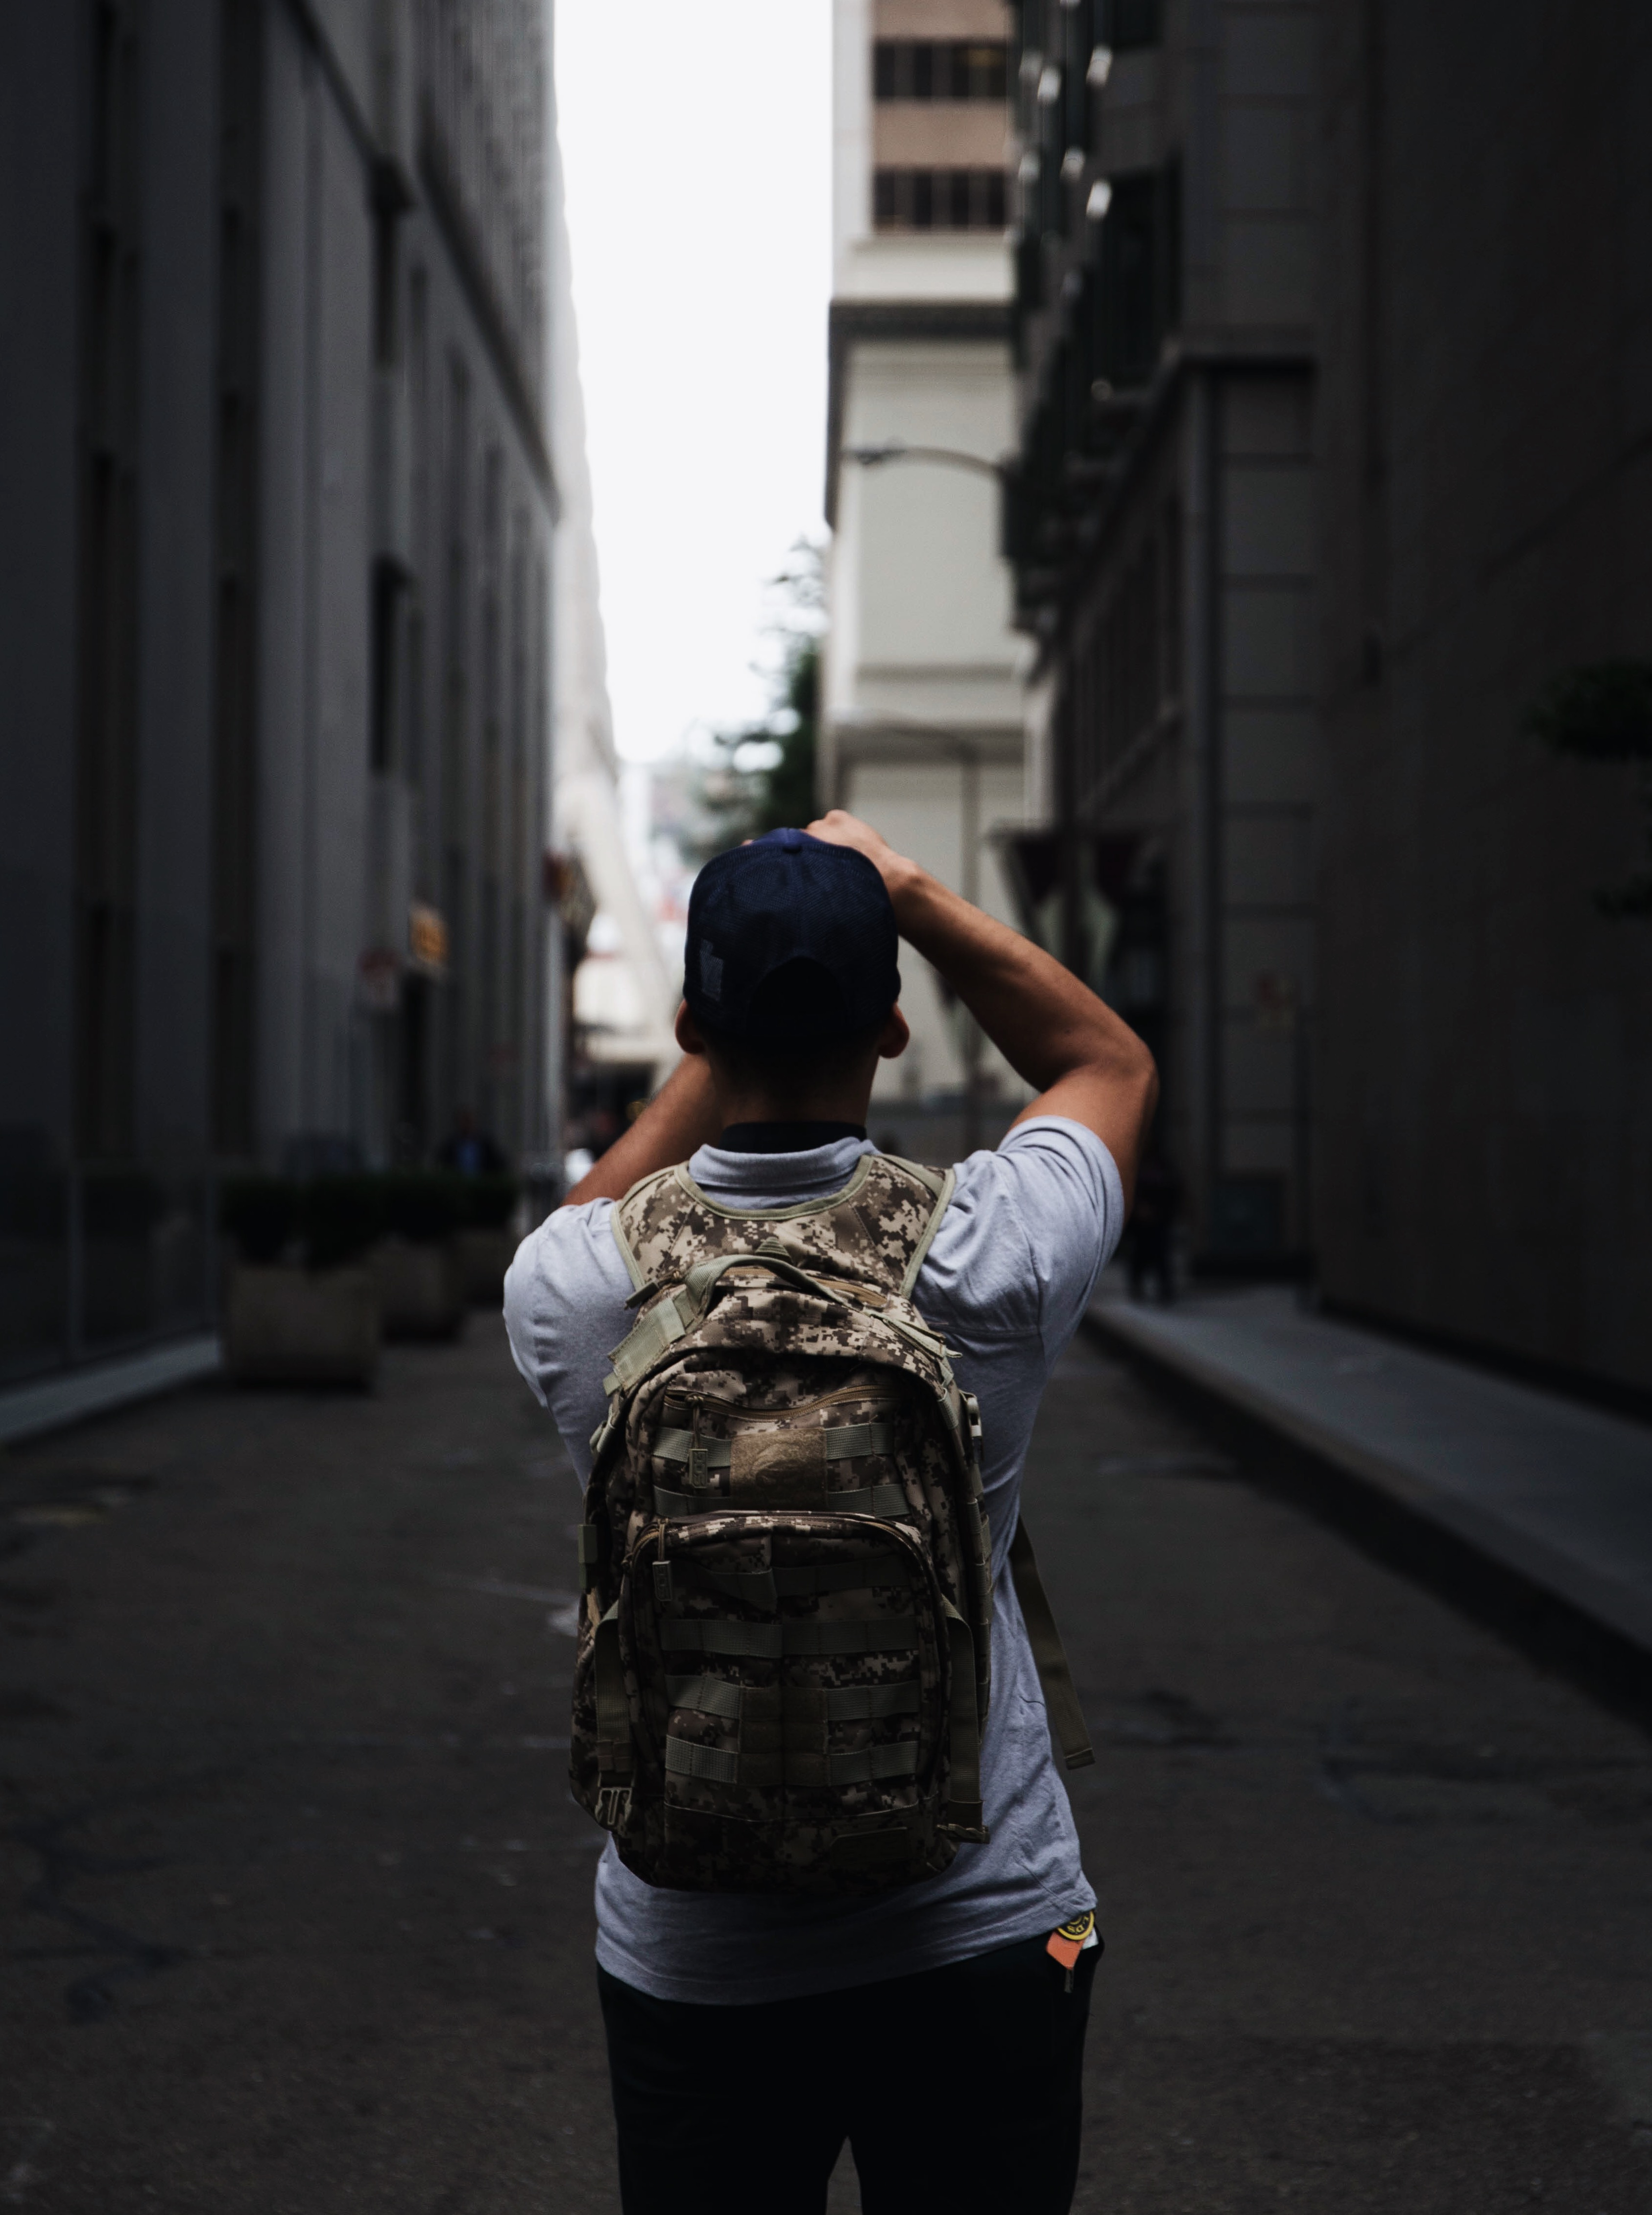 person facing away with camera photo by vitaly   gooner  on unsplash